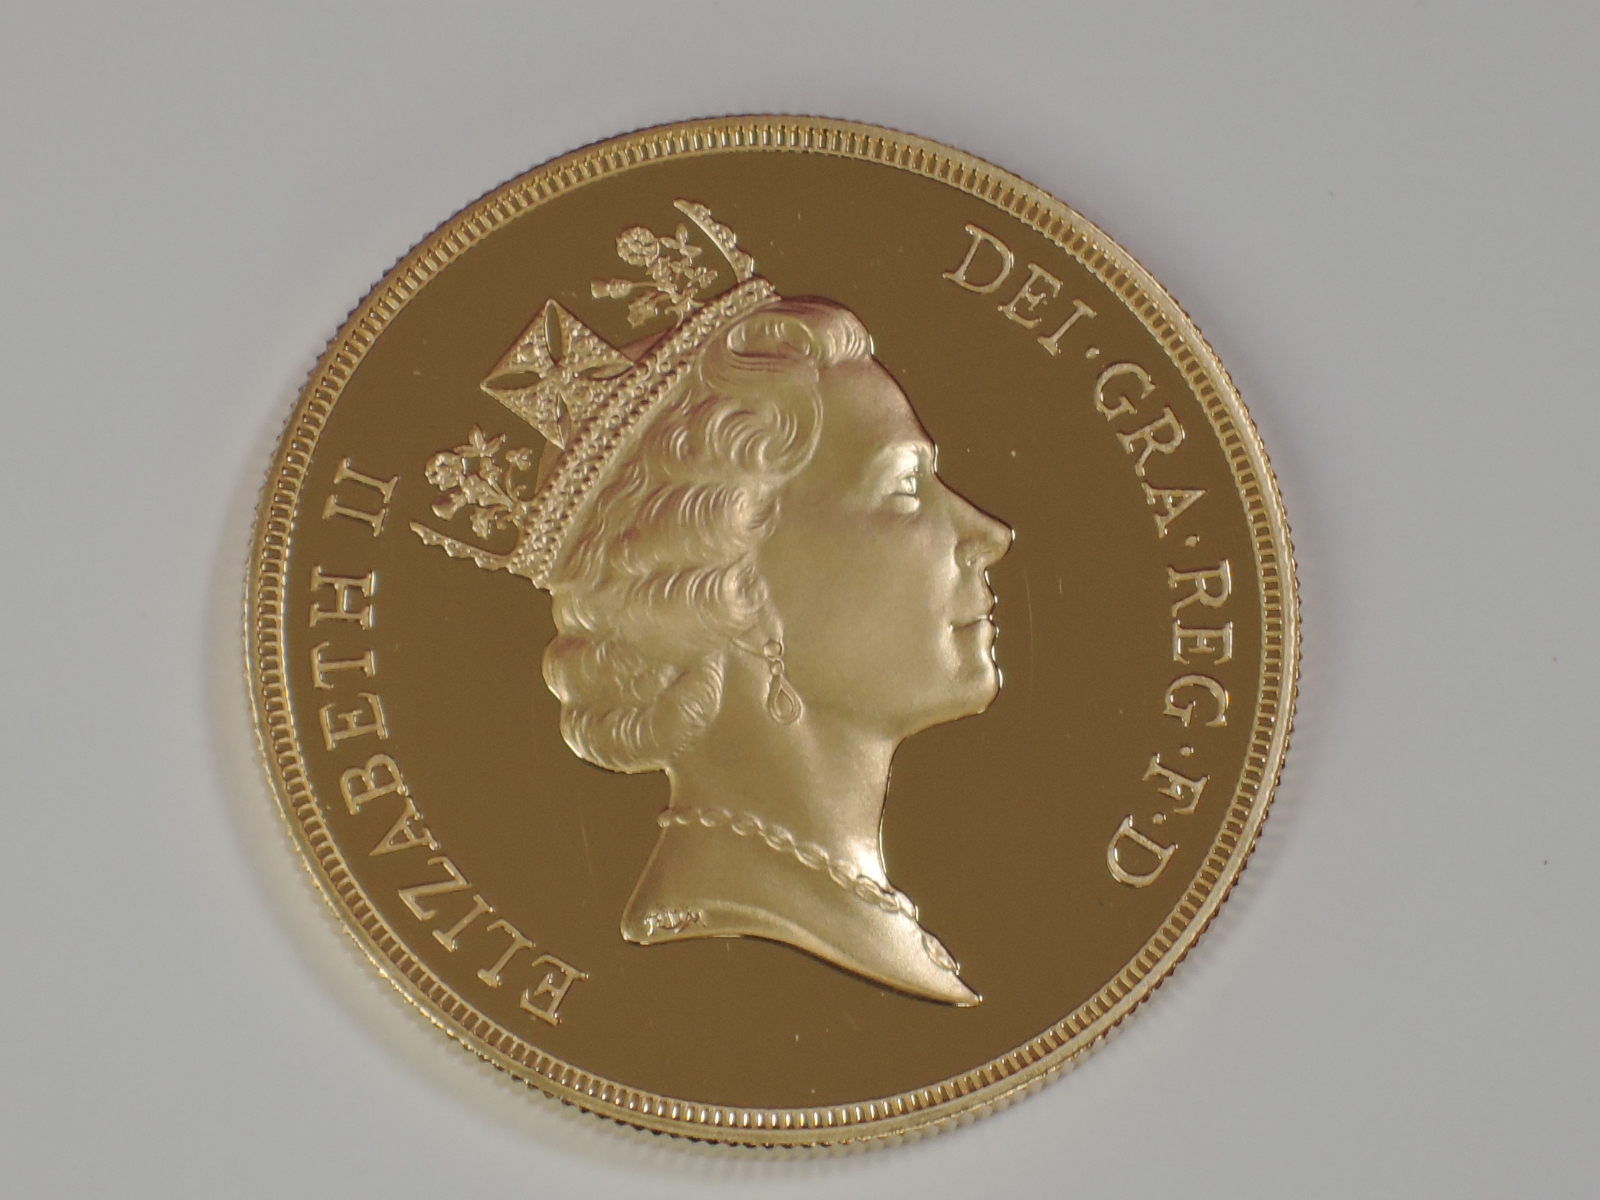 Lot 650 - A gold 40g 1992 Great Britain £5 coin, in plastic case